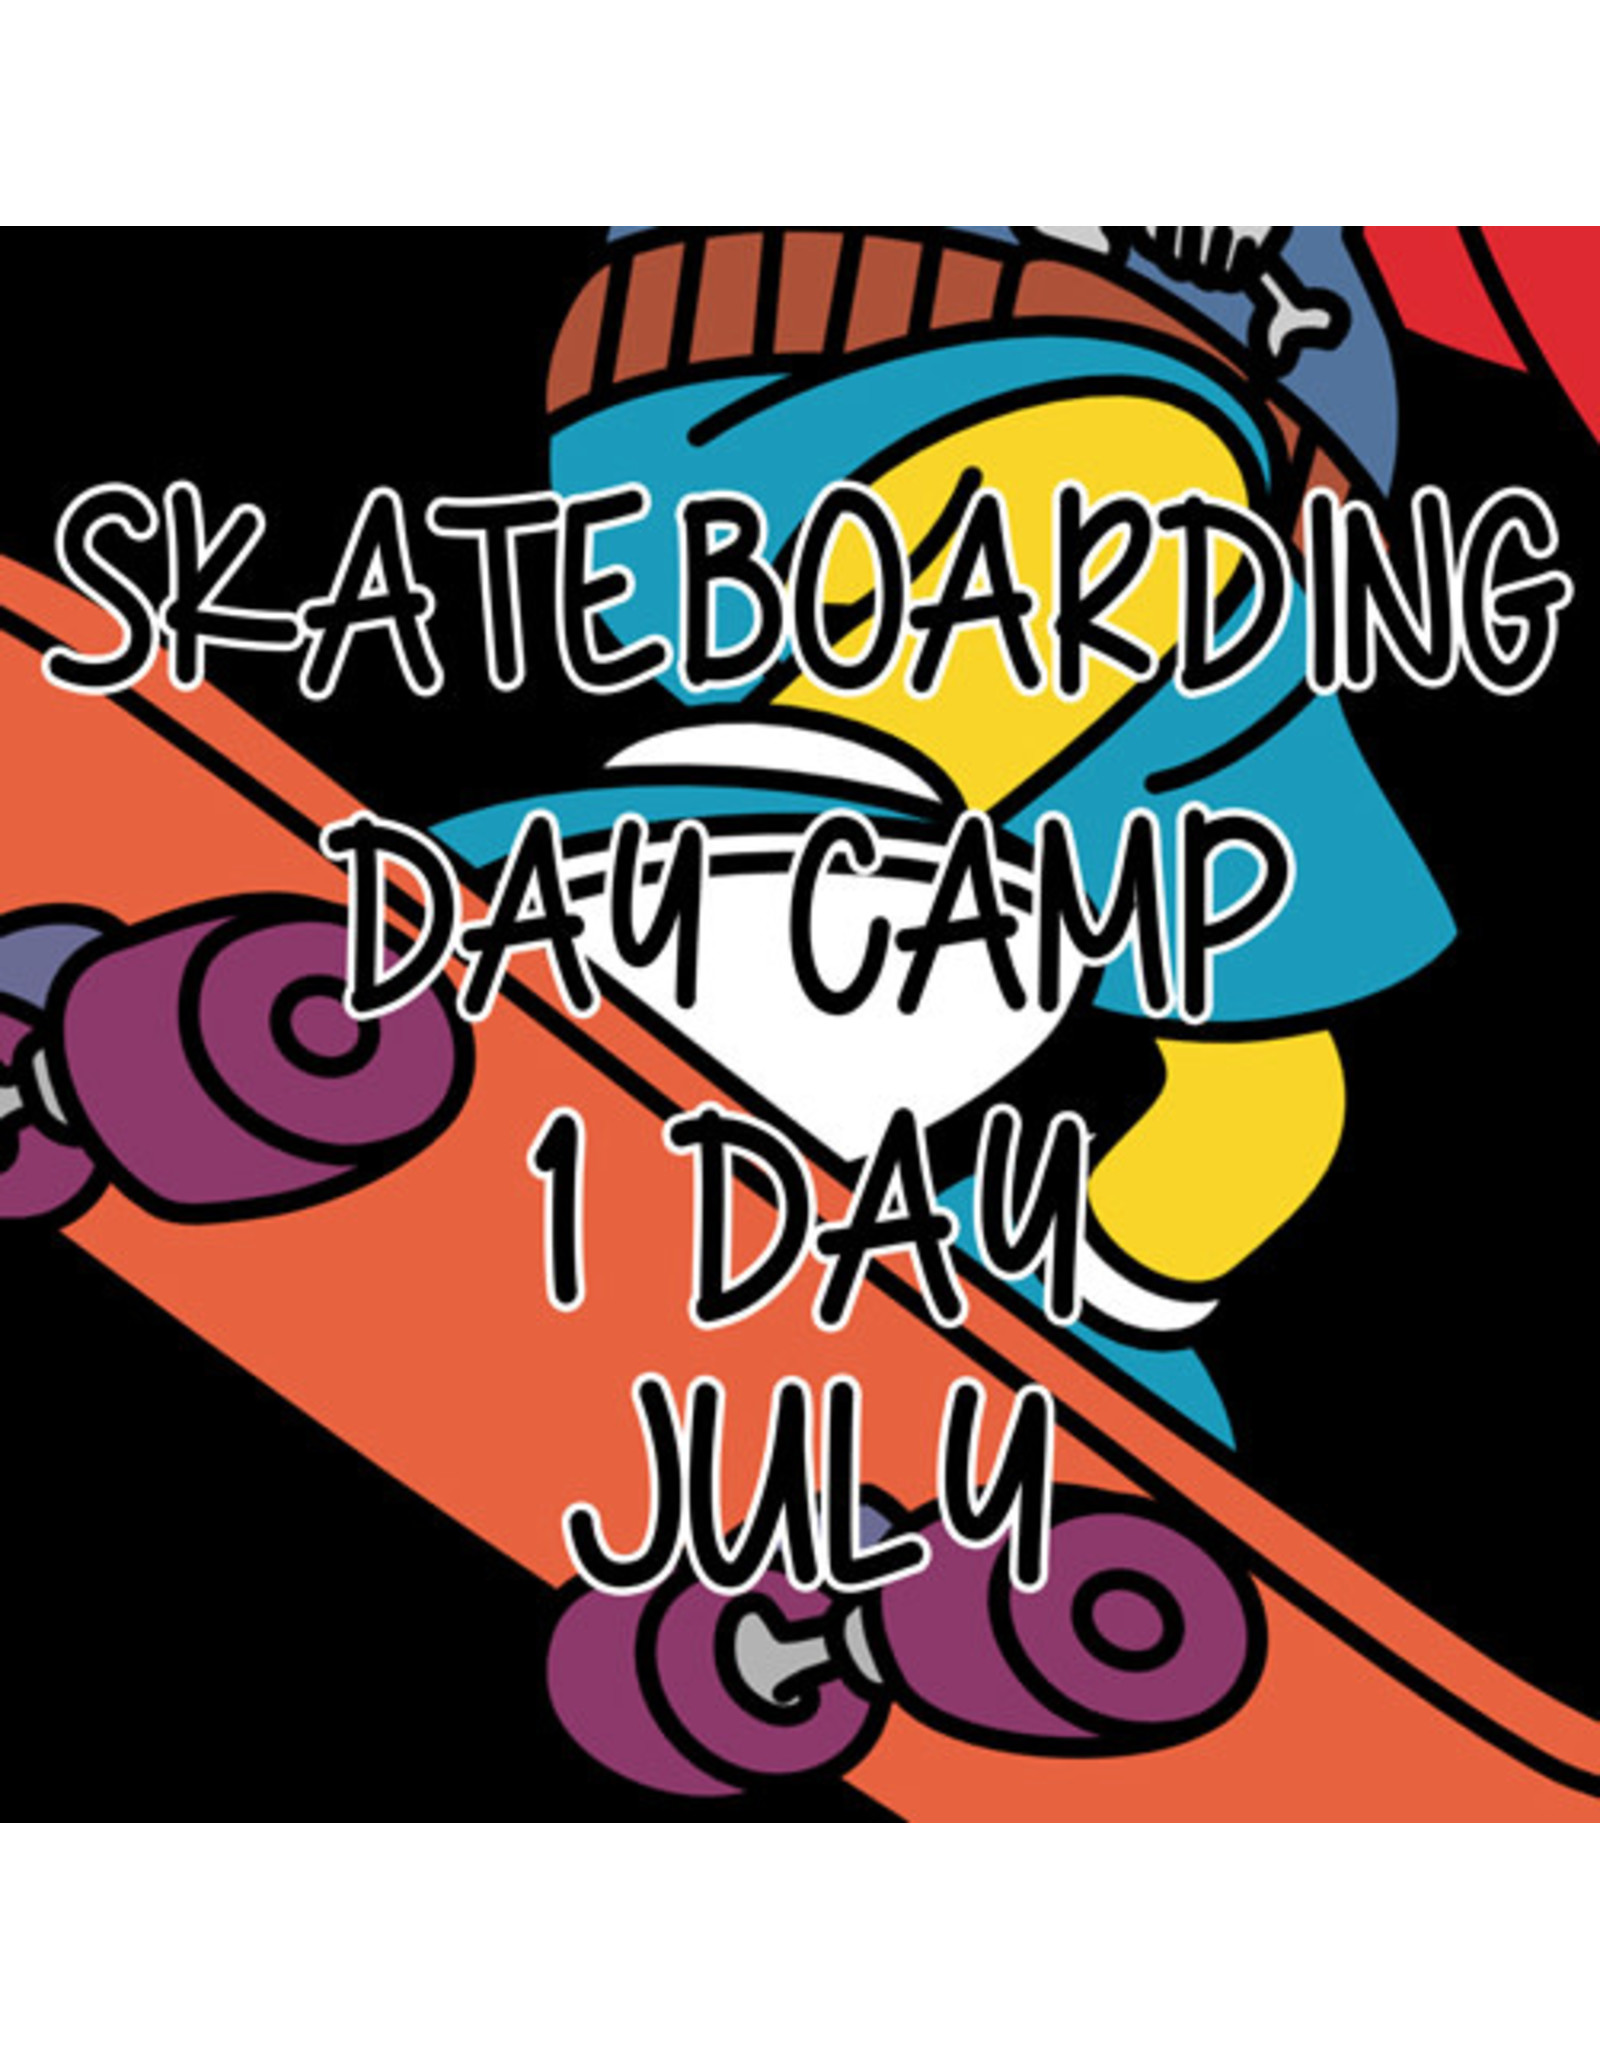 Southside 1 Day Summer Skateboarding Day Camp July